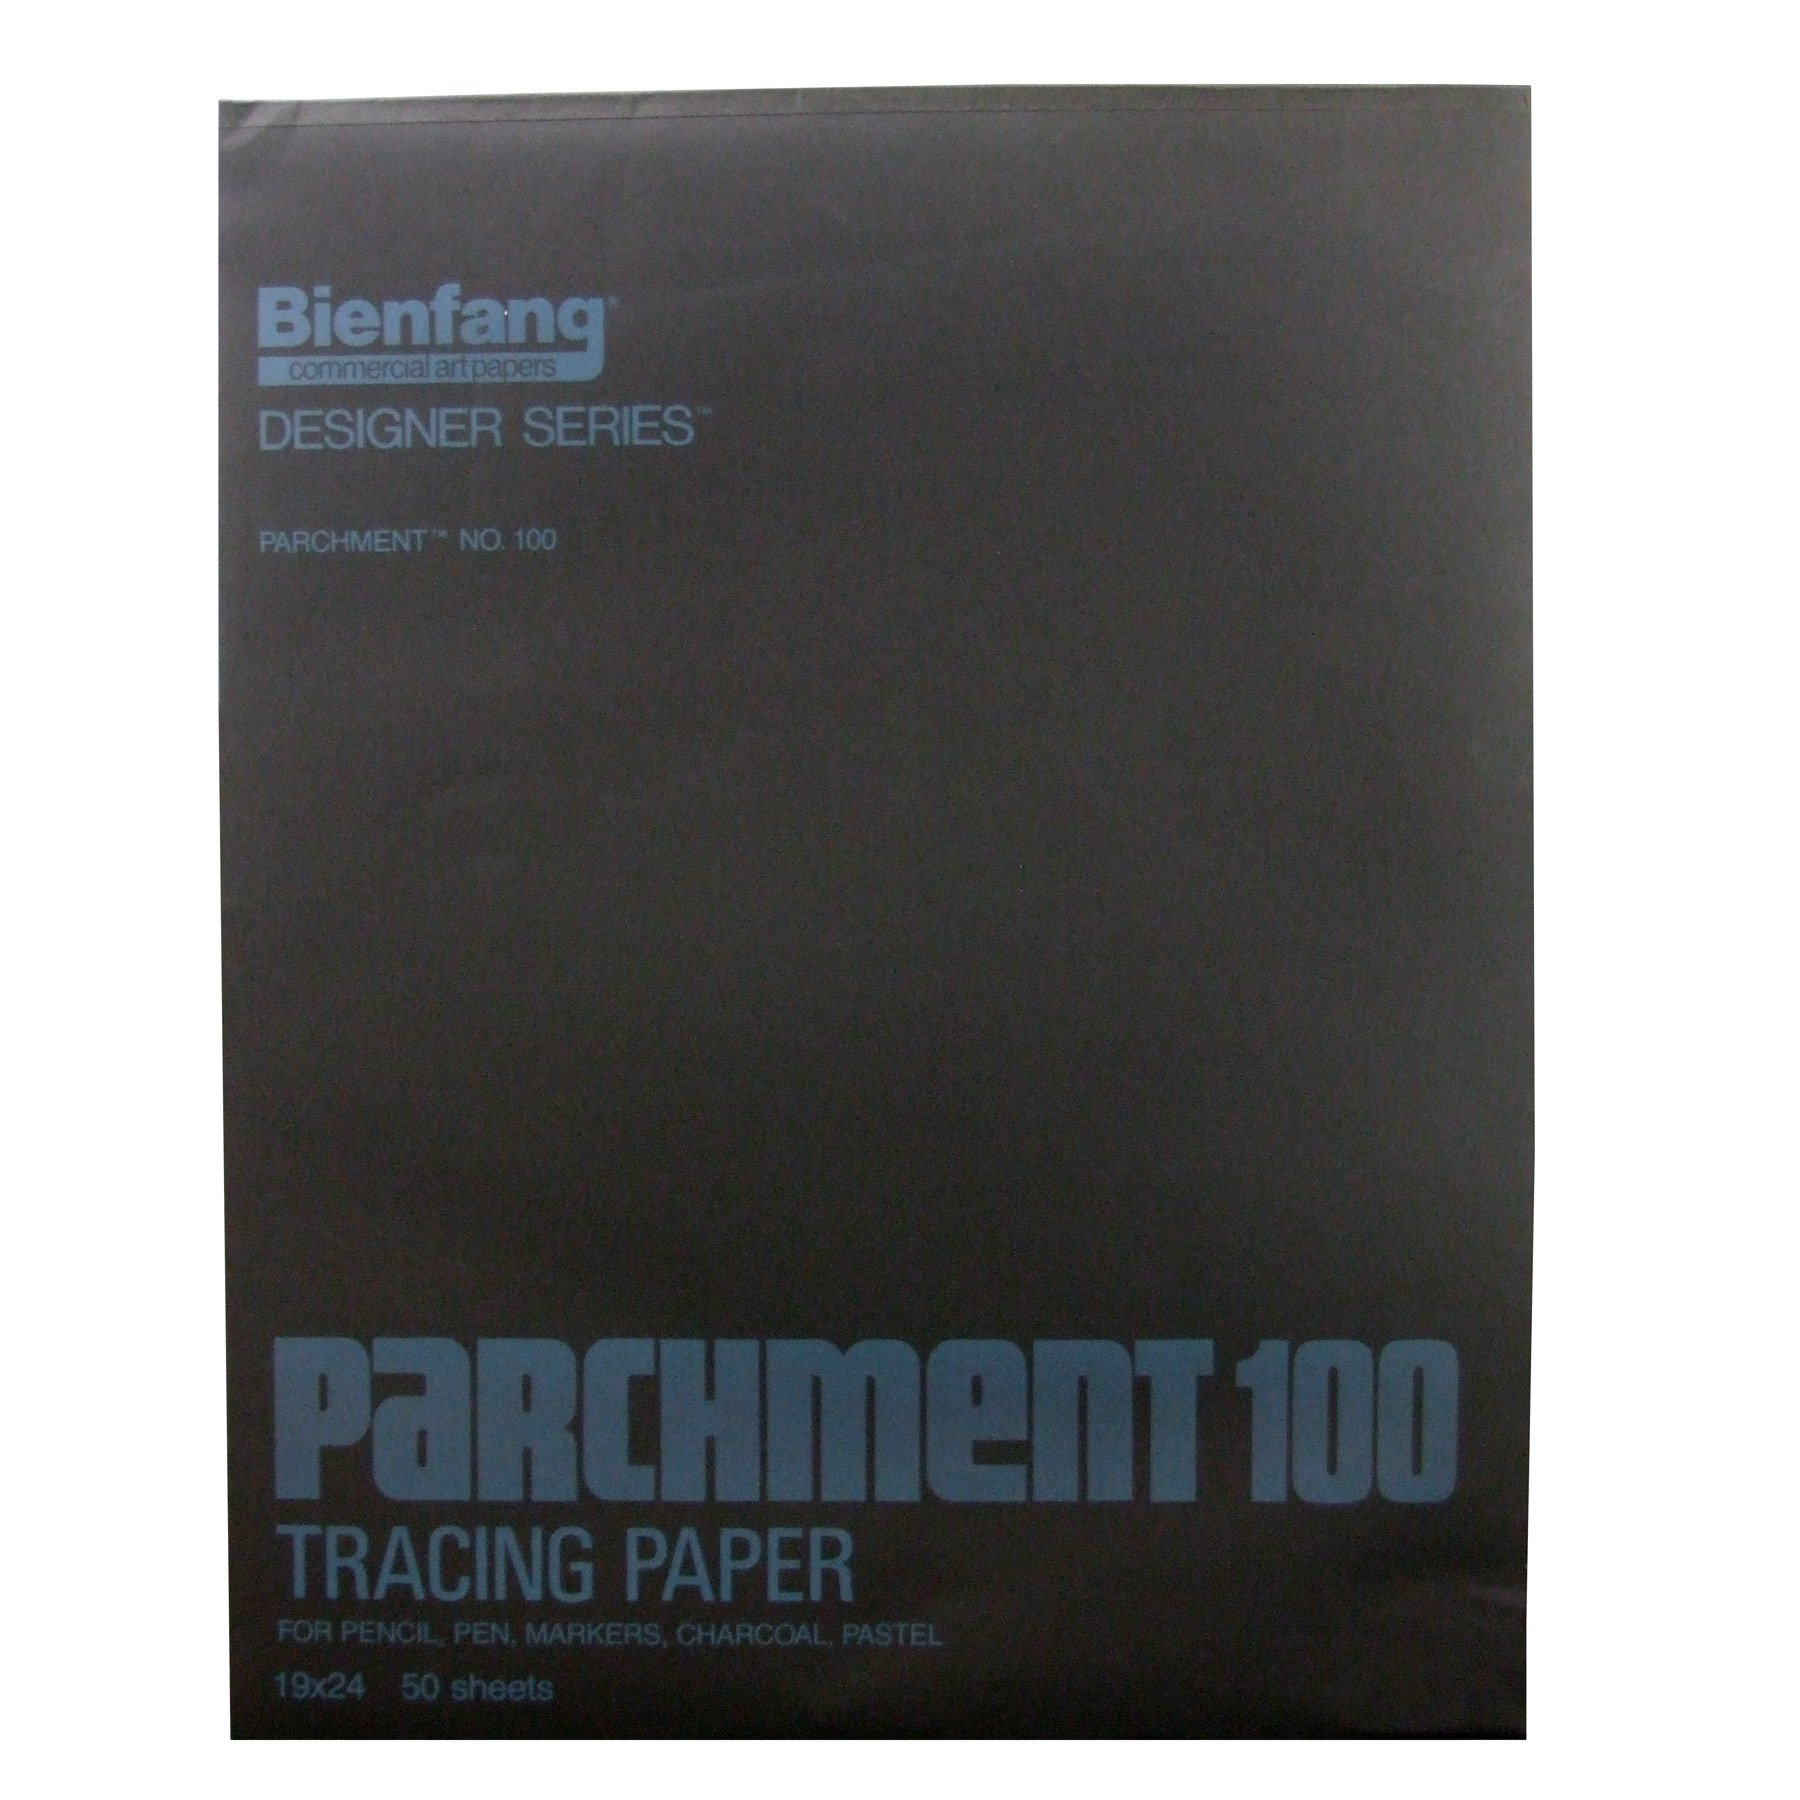 Bienfang Parchment Tracing Paper, 19 x 24 Inches, Transparent, 50 Sheets per Pad (240-161) by Bienfang